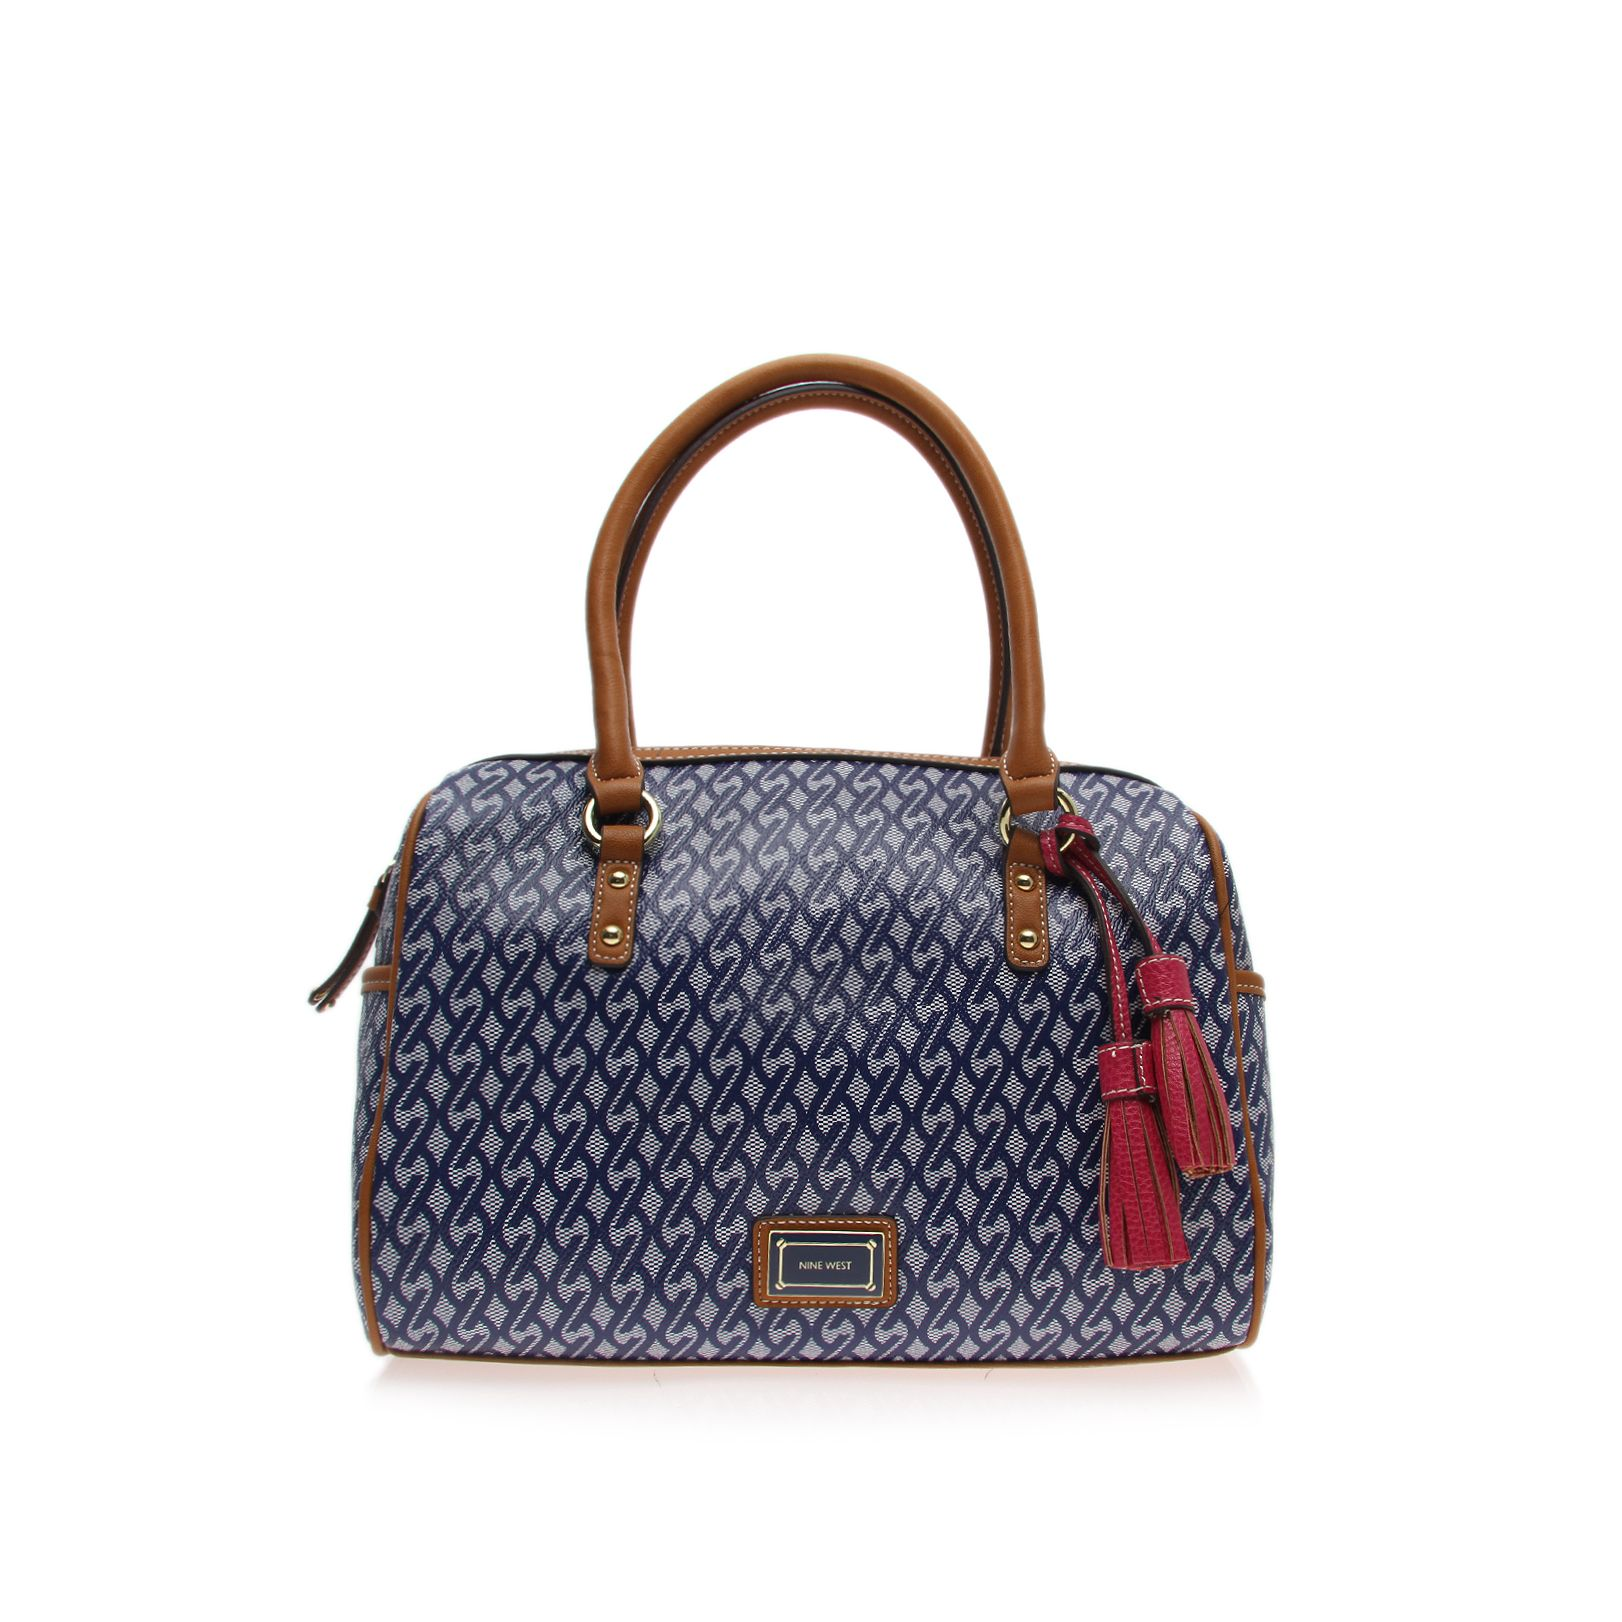 Showstopper blue tote bag